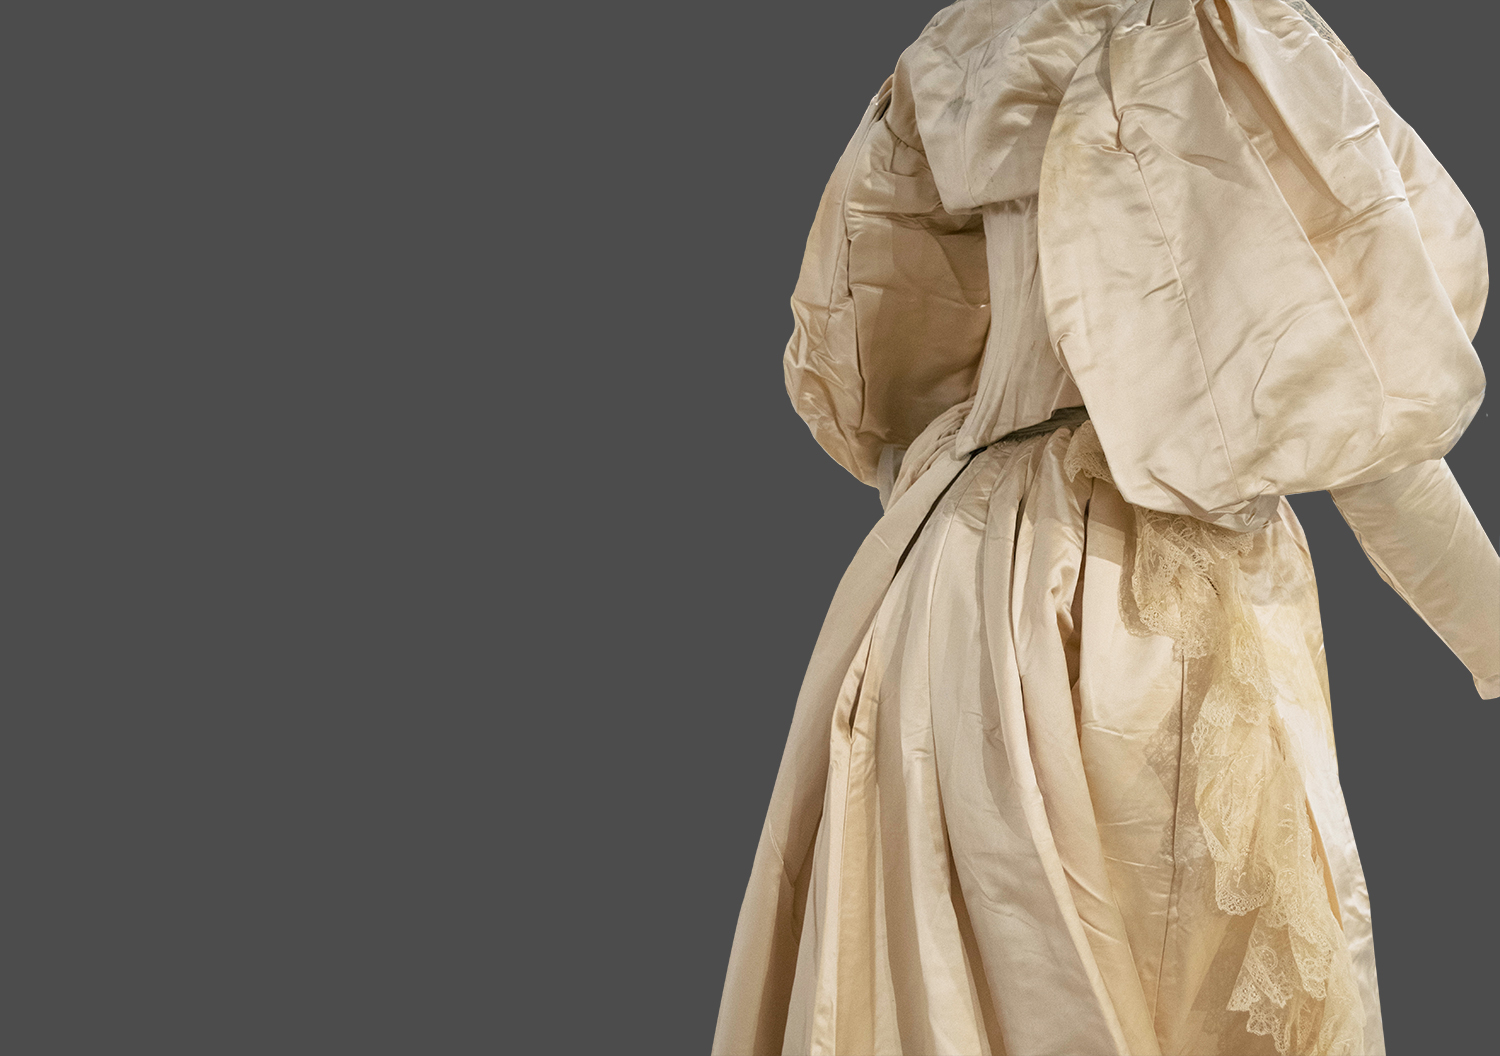 1894 Wedding Dress From The Exhibit Threads The Story In